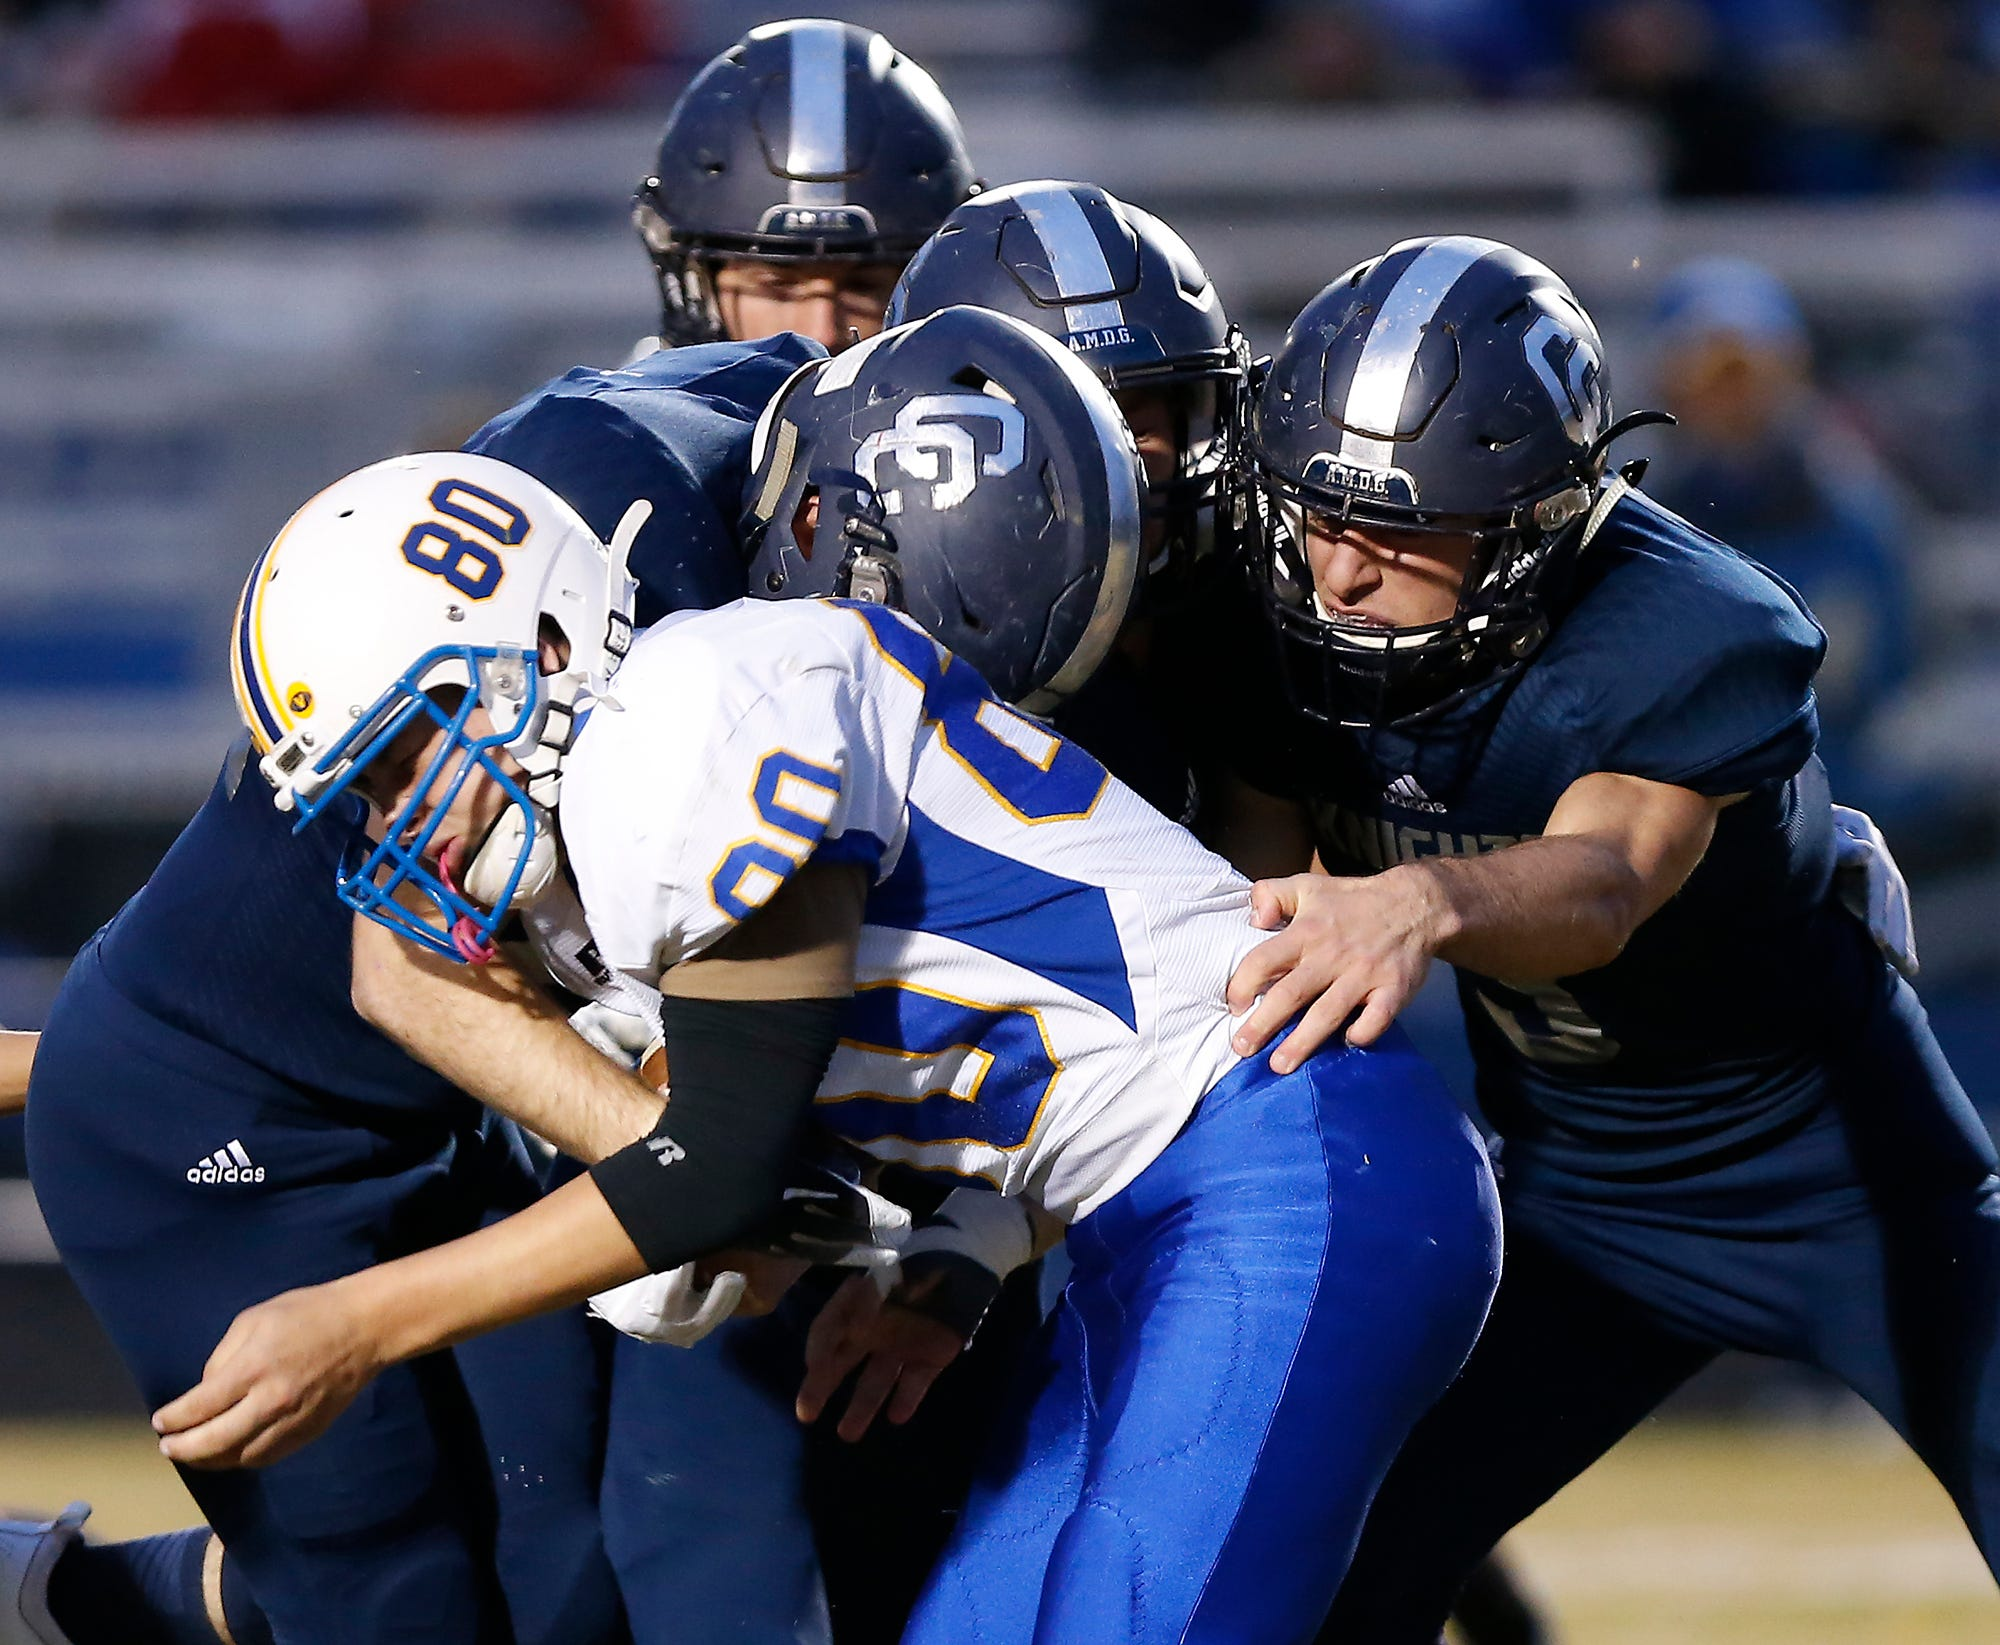 The Central Catholic defense wraps up Richie Spear of North White in the first half.